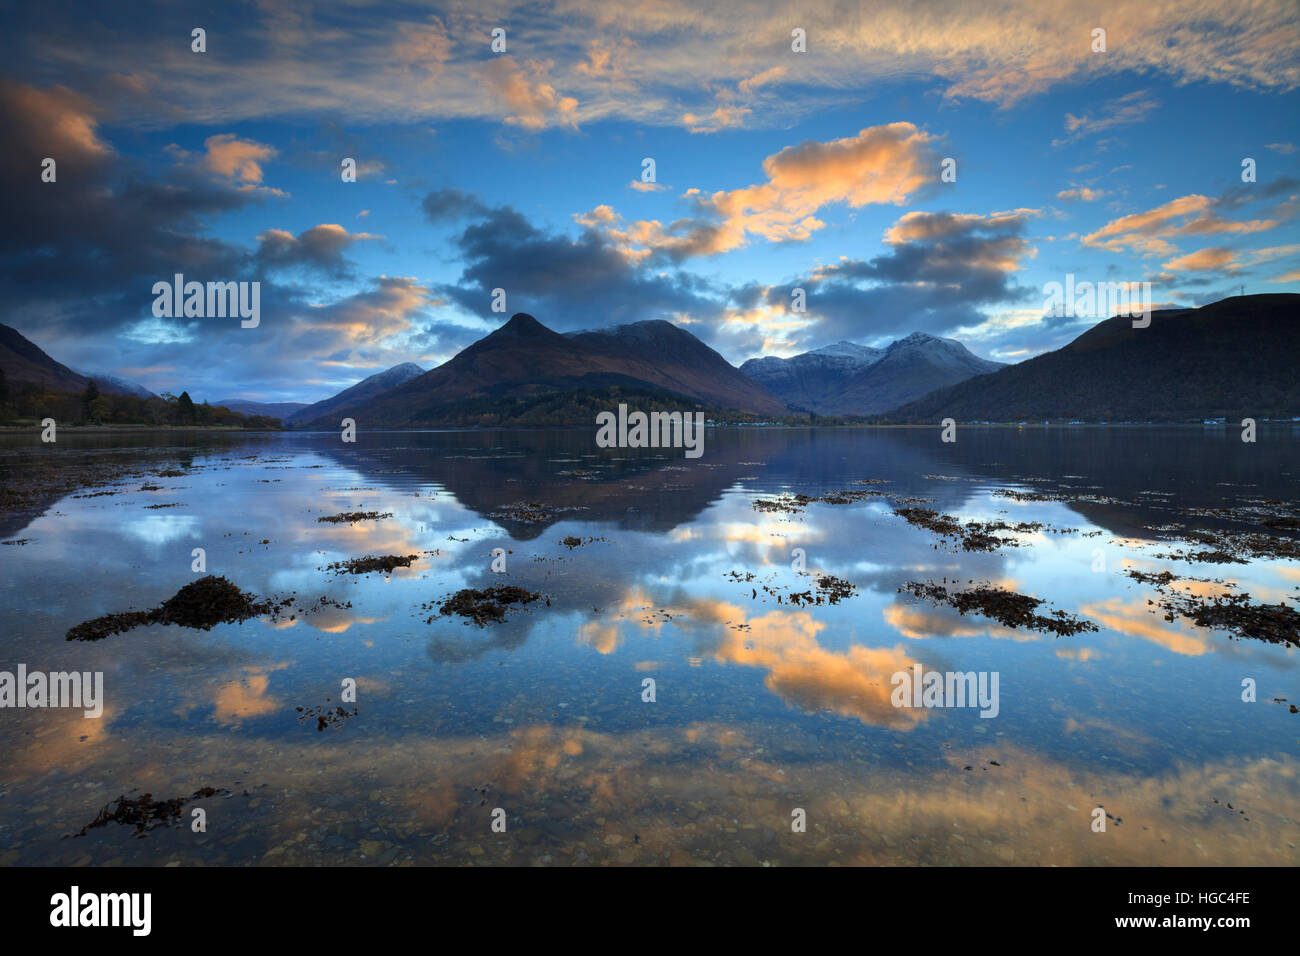 Sunset captured from the North Shore of Loch Leven in the Scottish Highlands with the Pap of Glencoe in the distance. - Stock Image